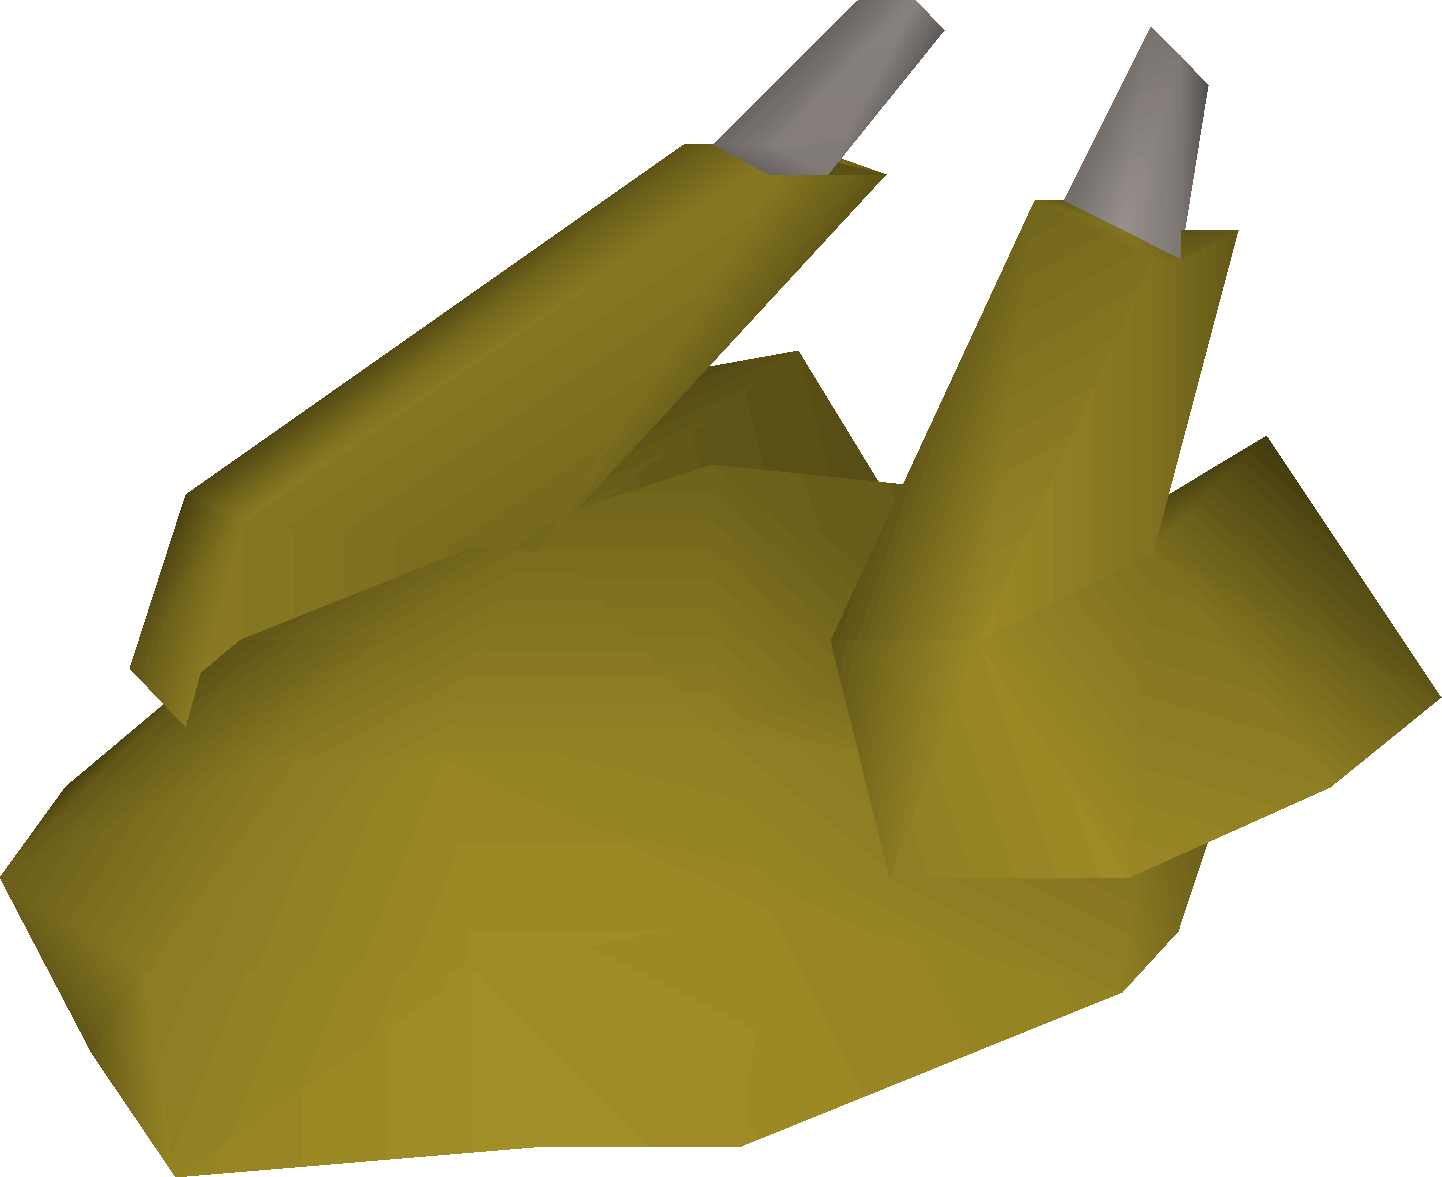 Cooked_chompy_detail.png